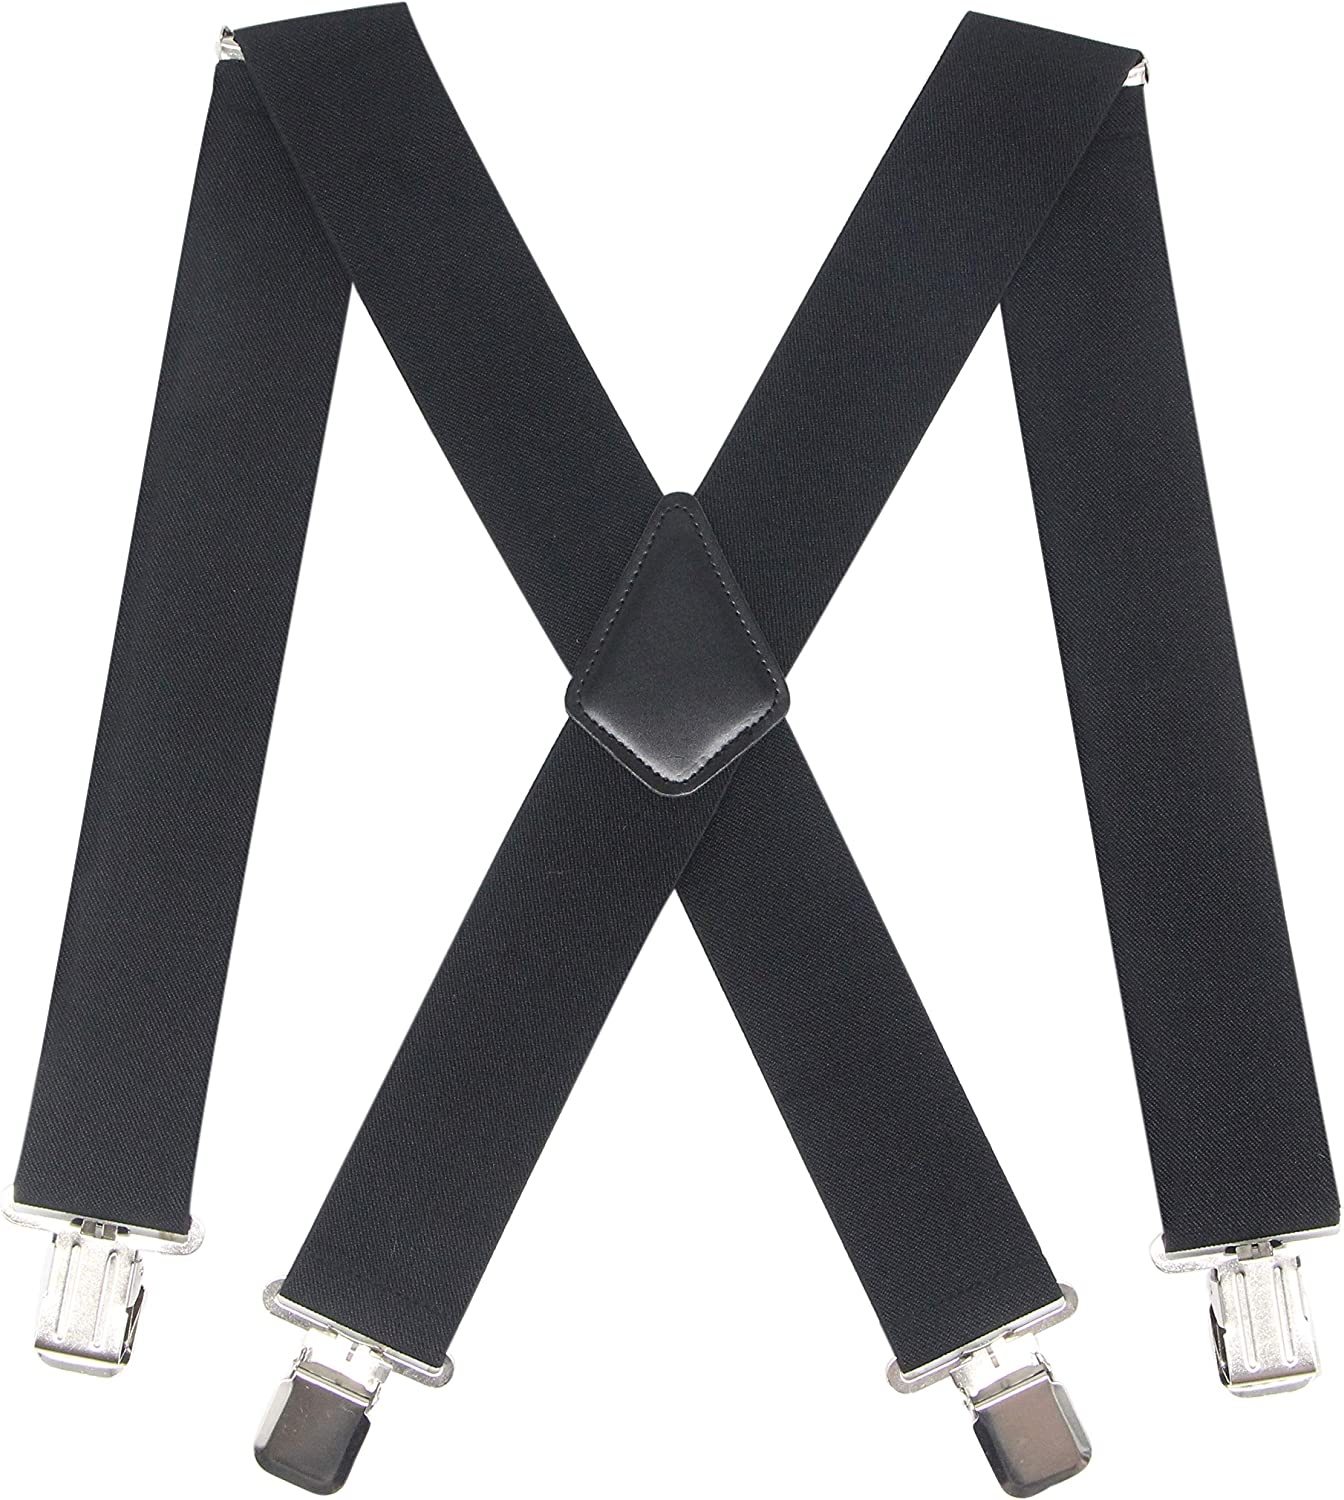 Mens 2 Inch Wide Suspenders Heavy Duty Strong Clips Adjustable Elastic Braces Big and Tall X-Back